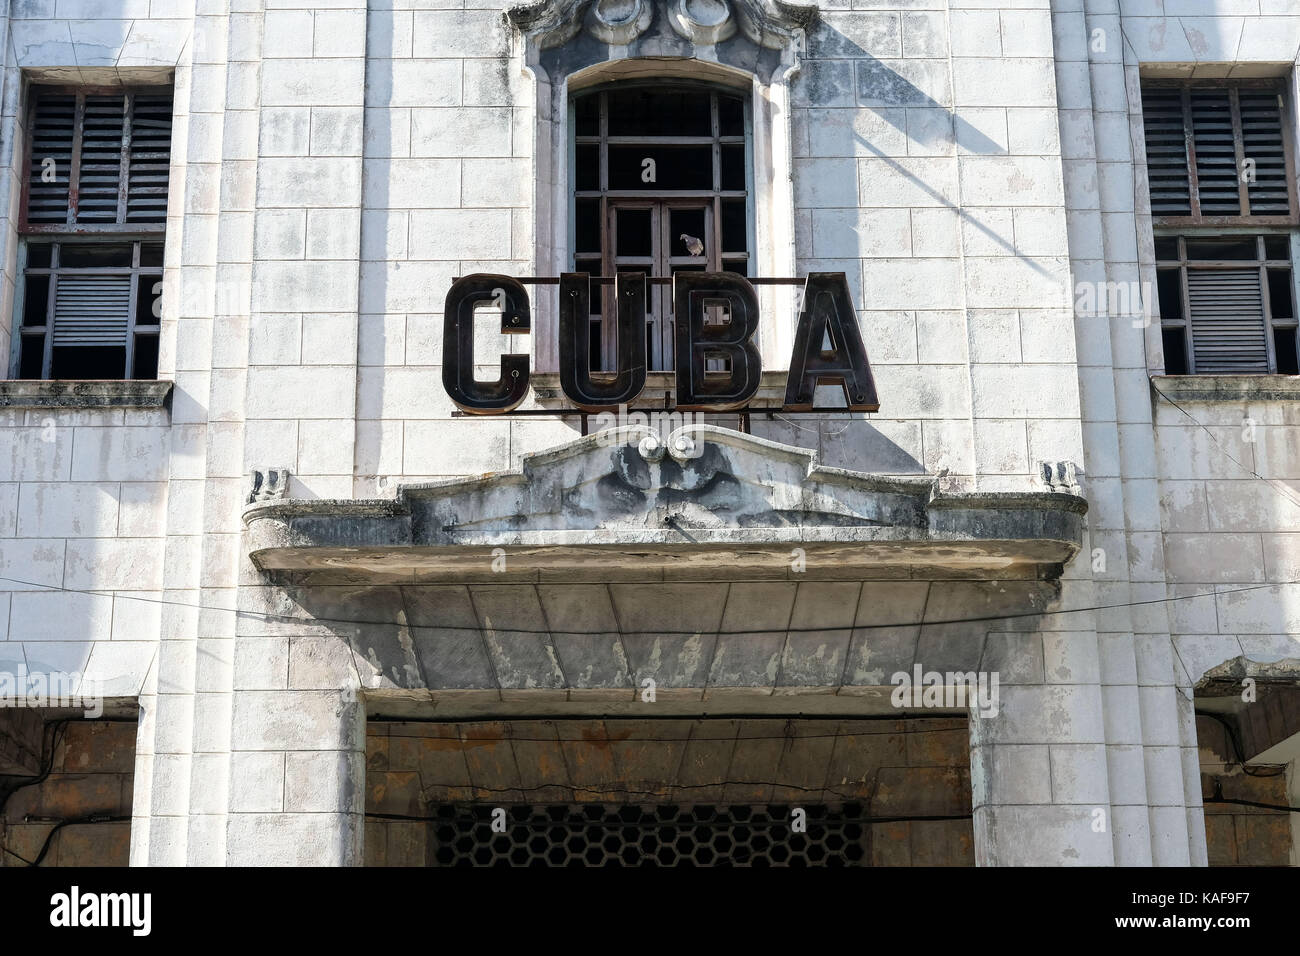 Un immeuble décrépit à La Havane, Cuba. Photo Stock